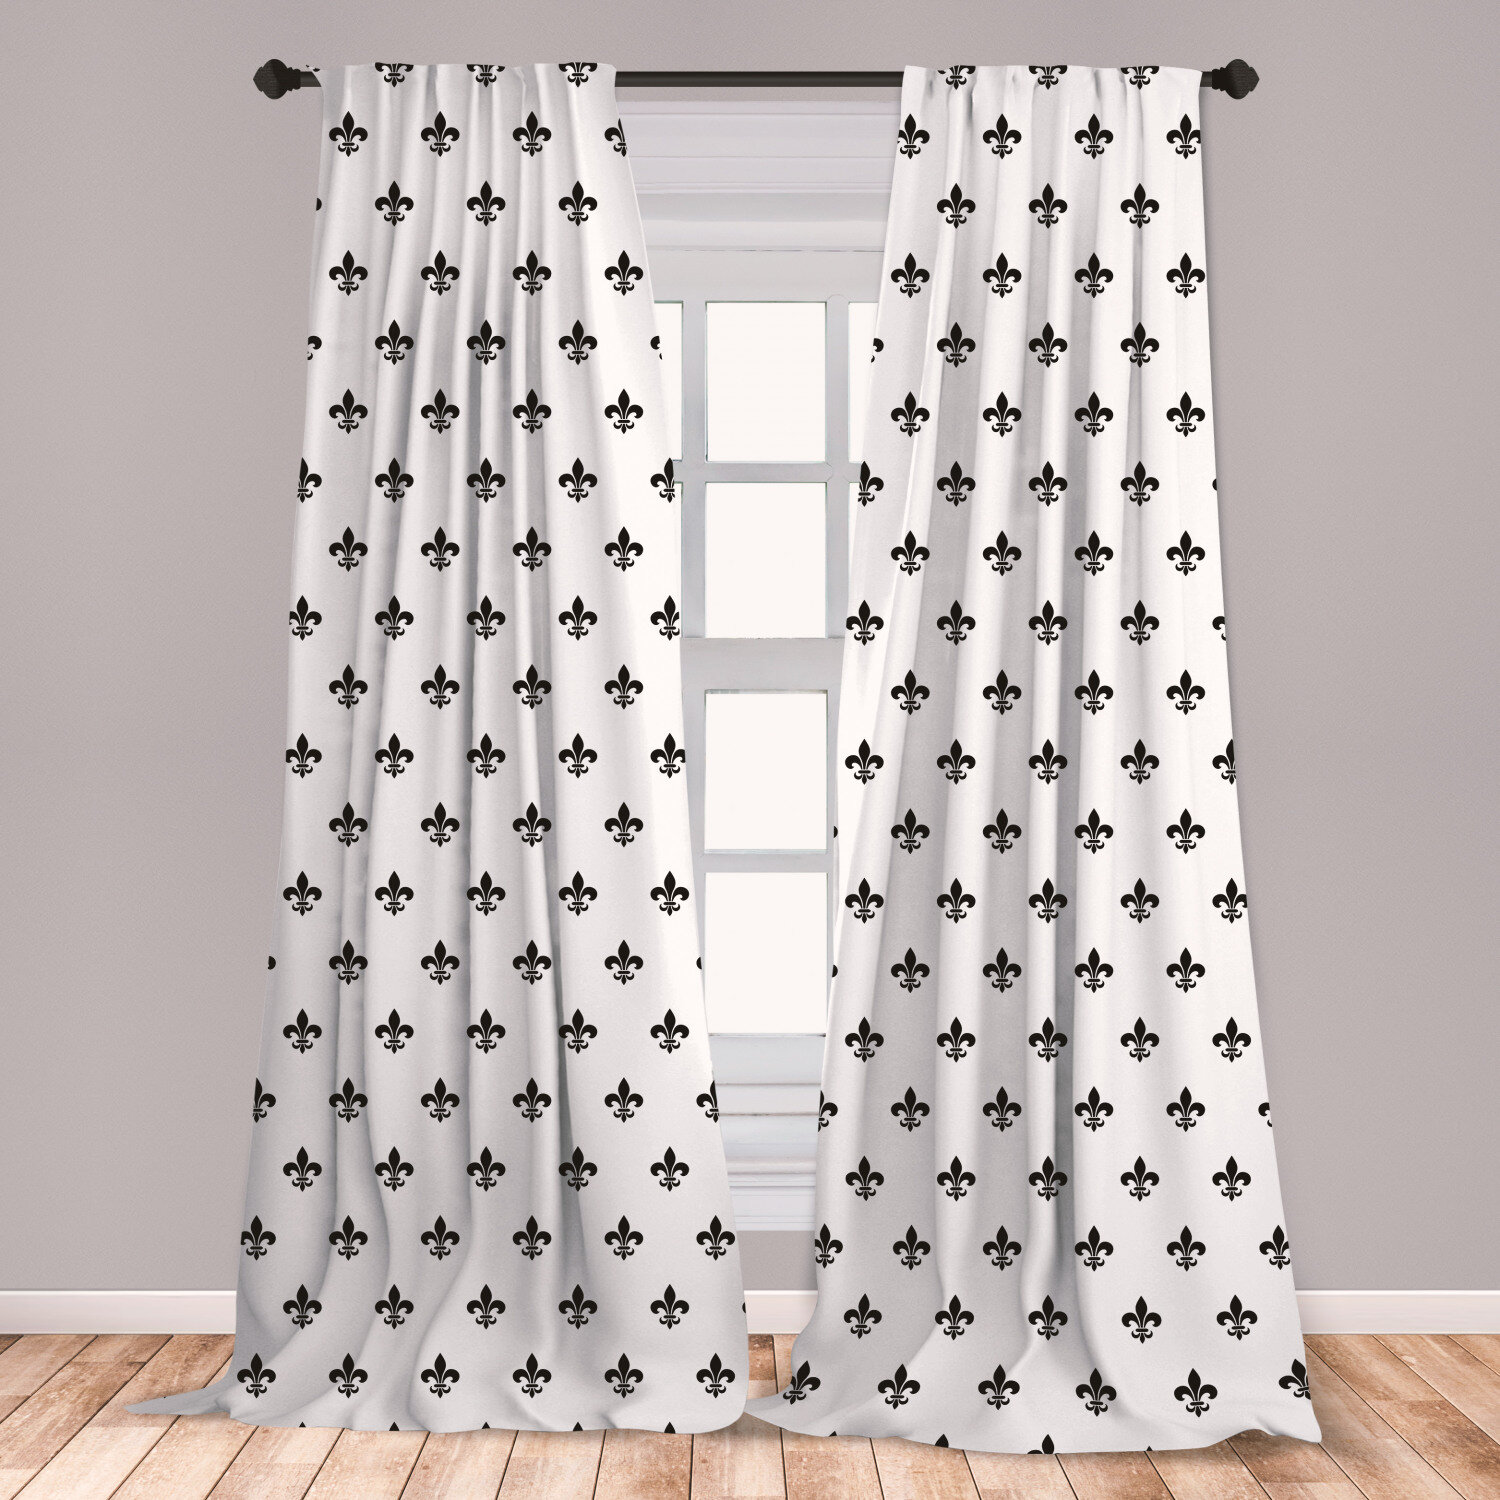 Ambesonne Fleur De Lis Curtains Pointed Leaves With Monochrome Design Abstract Clical Ornamental Pattern Window Treatments 2 Panel Set For Living